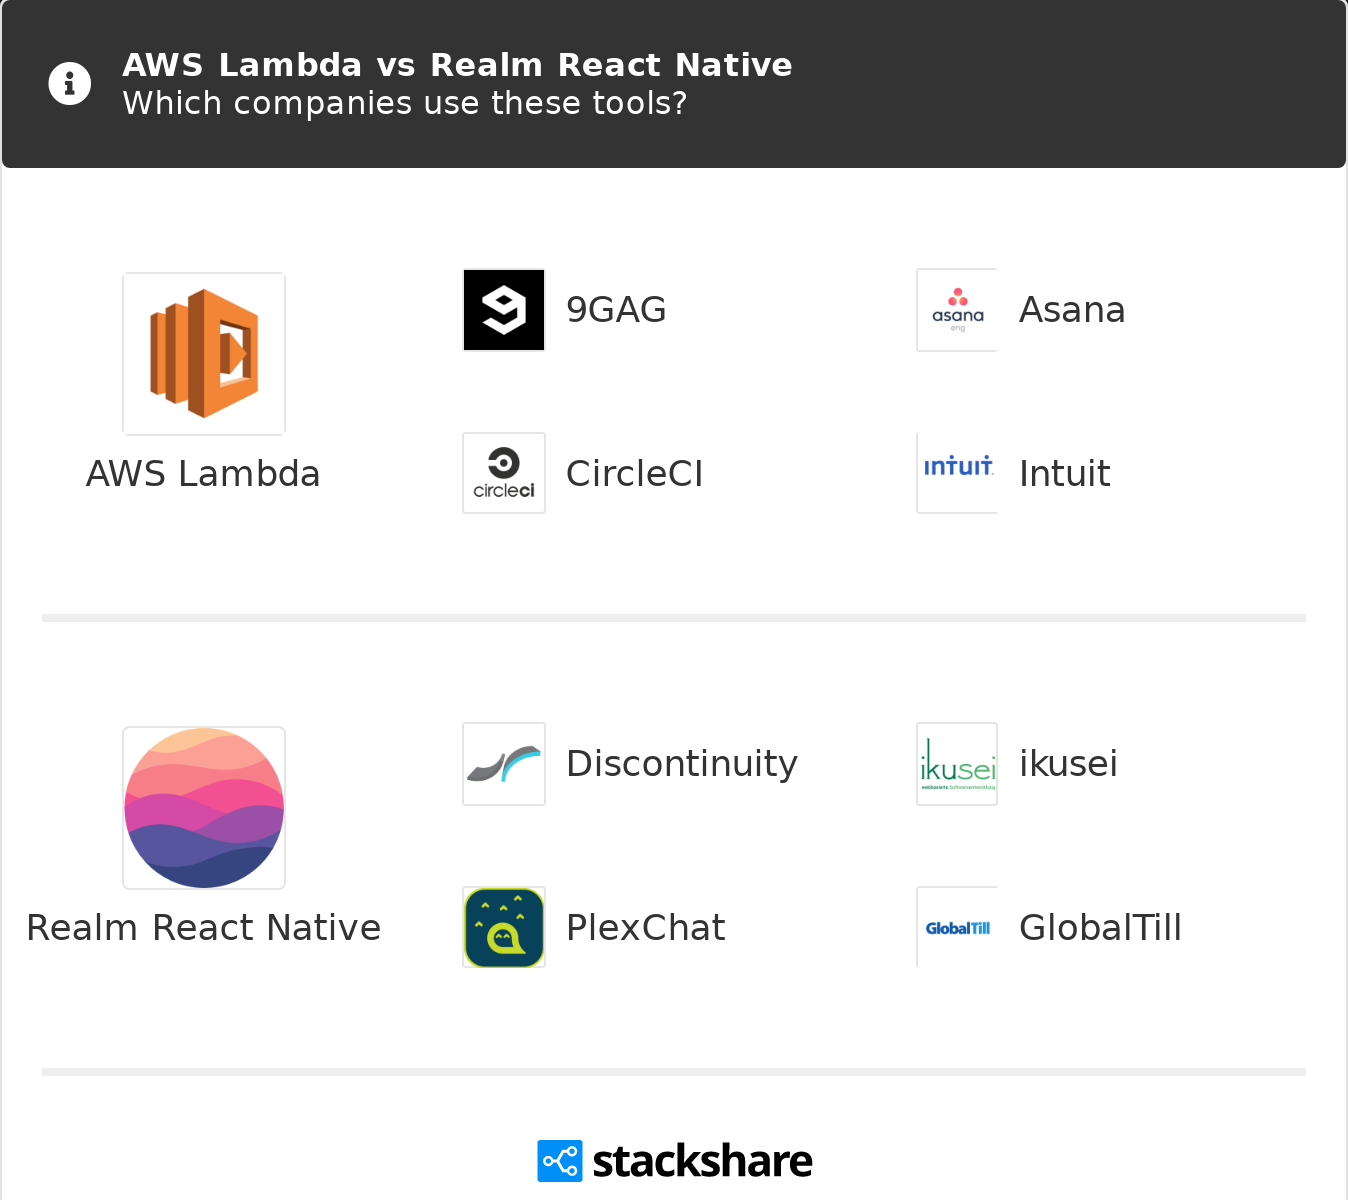 AWS Lambda vs Realm React Native   What are the differences?